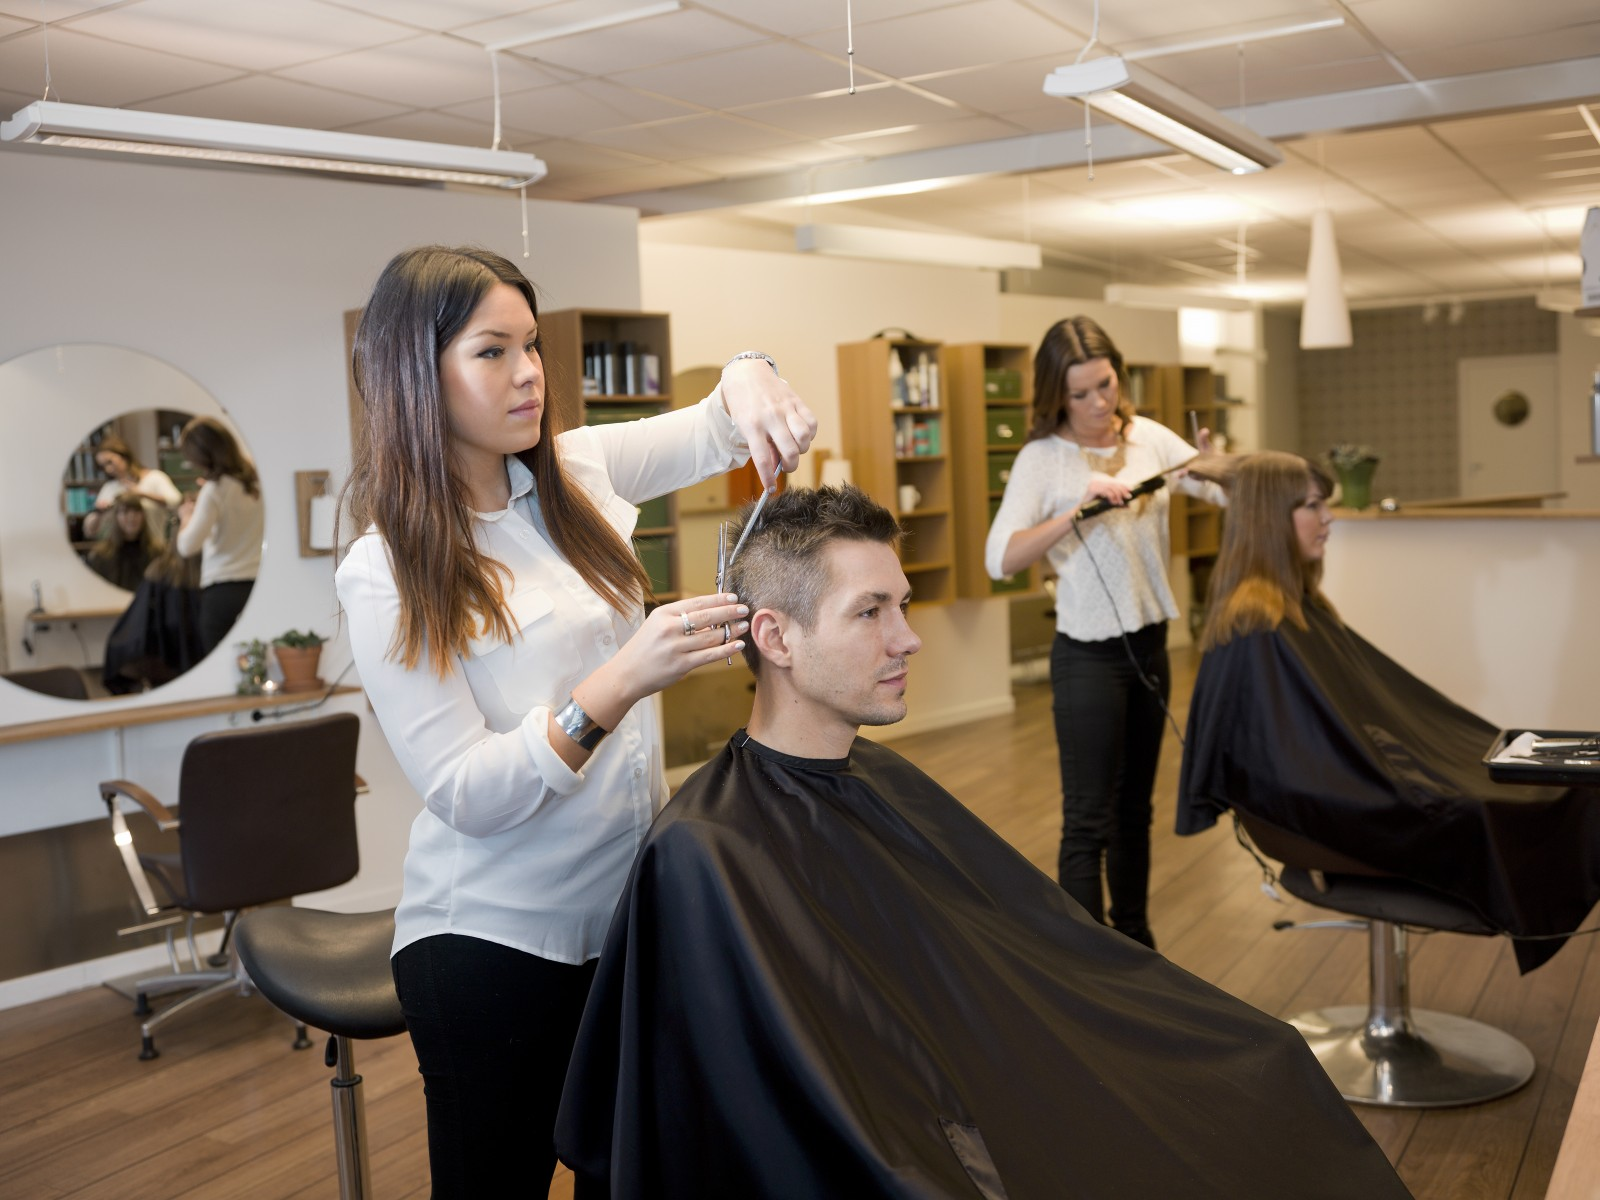 Hair Salon for Sale South-East Melbourne | Melbourne